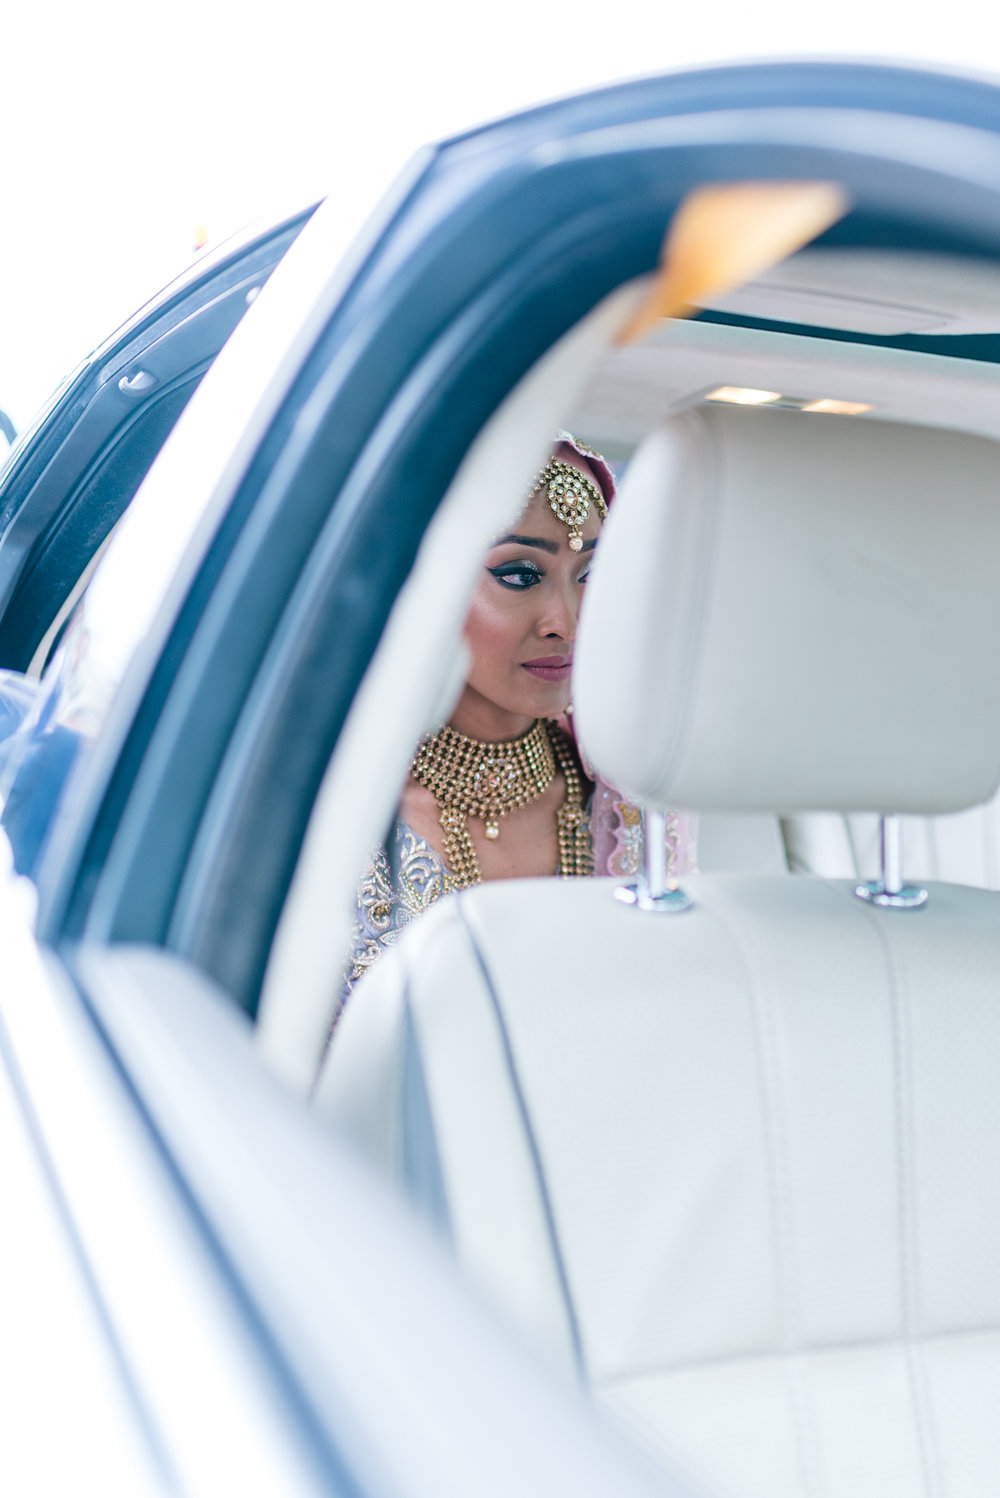 the bride sits contemplative in the back of the car while her groom sits in the front